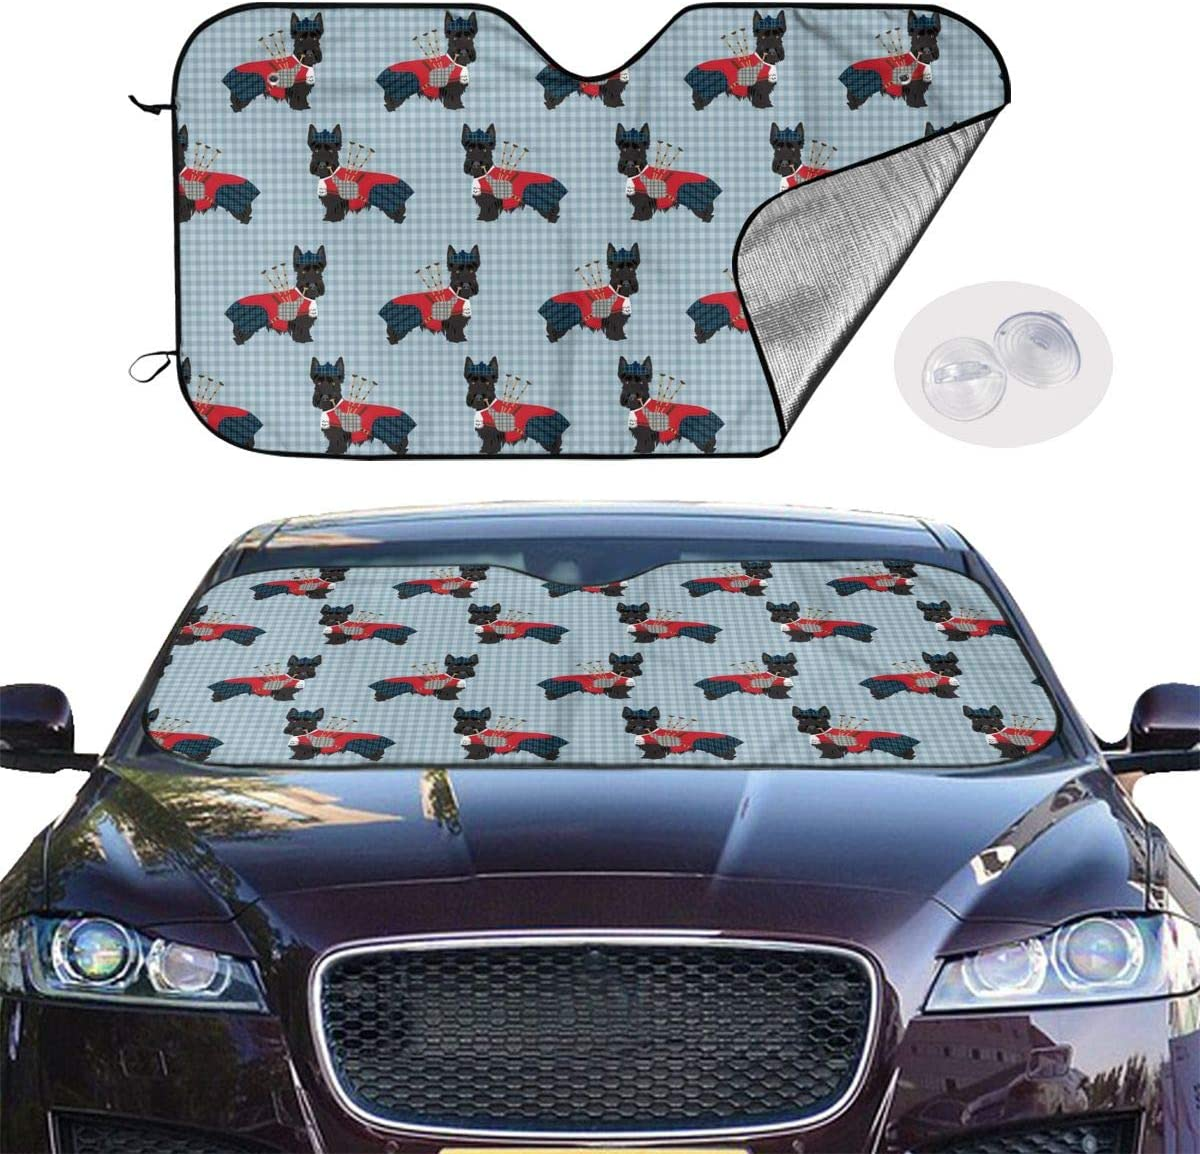 Scottie Dog with Bagpipes Universal Car Windshield Sun Shade 27.5 X 51.2in Car Front Window Sunshade-Uv Protection and Keeps Your Car Cool Heat-Universal Fit Easy Fold Storage